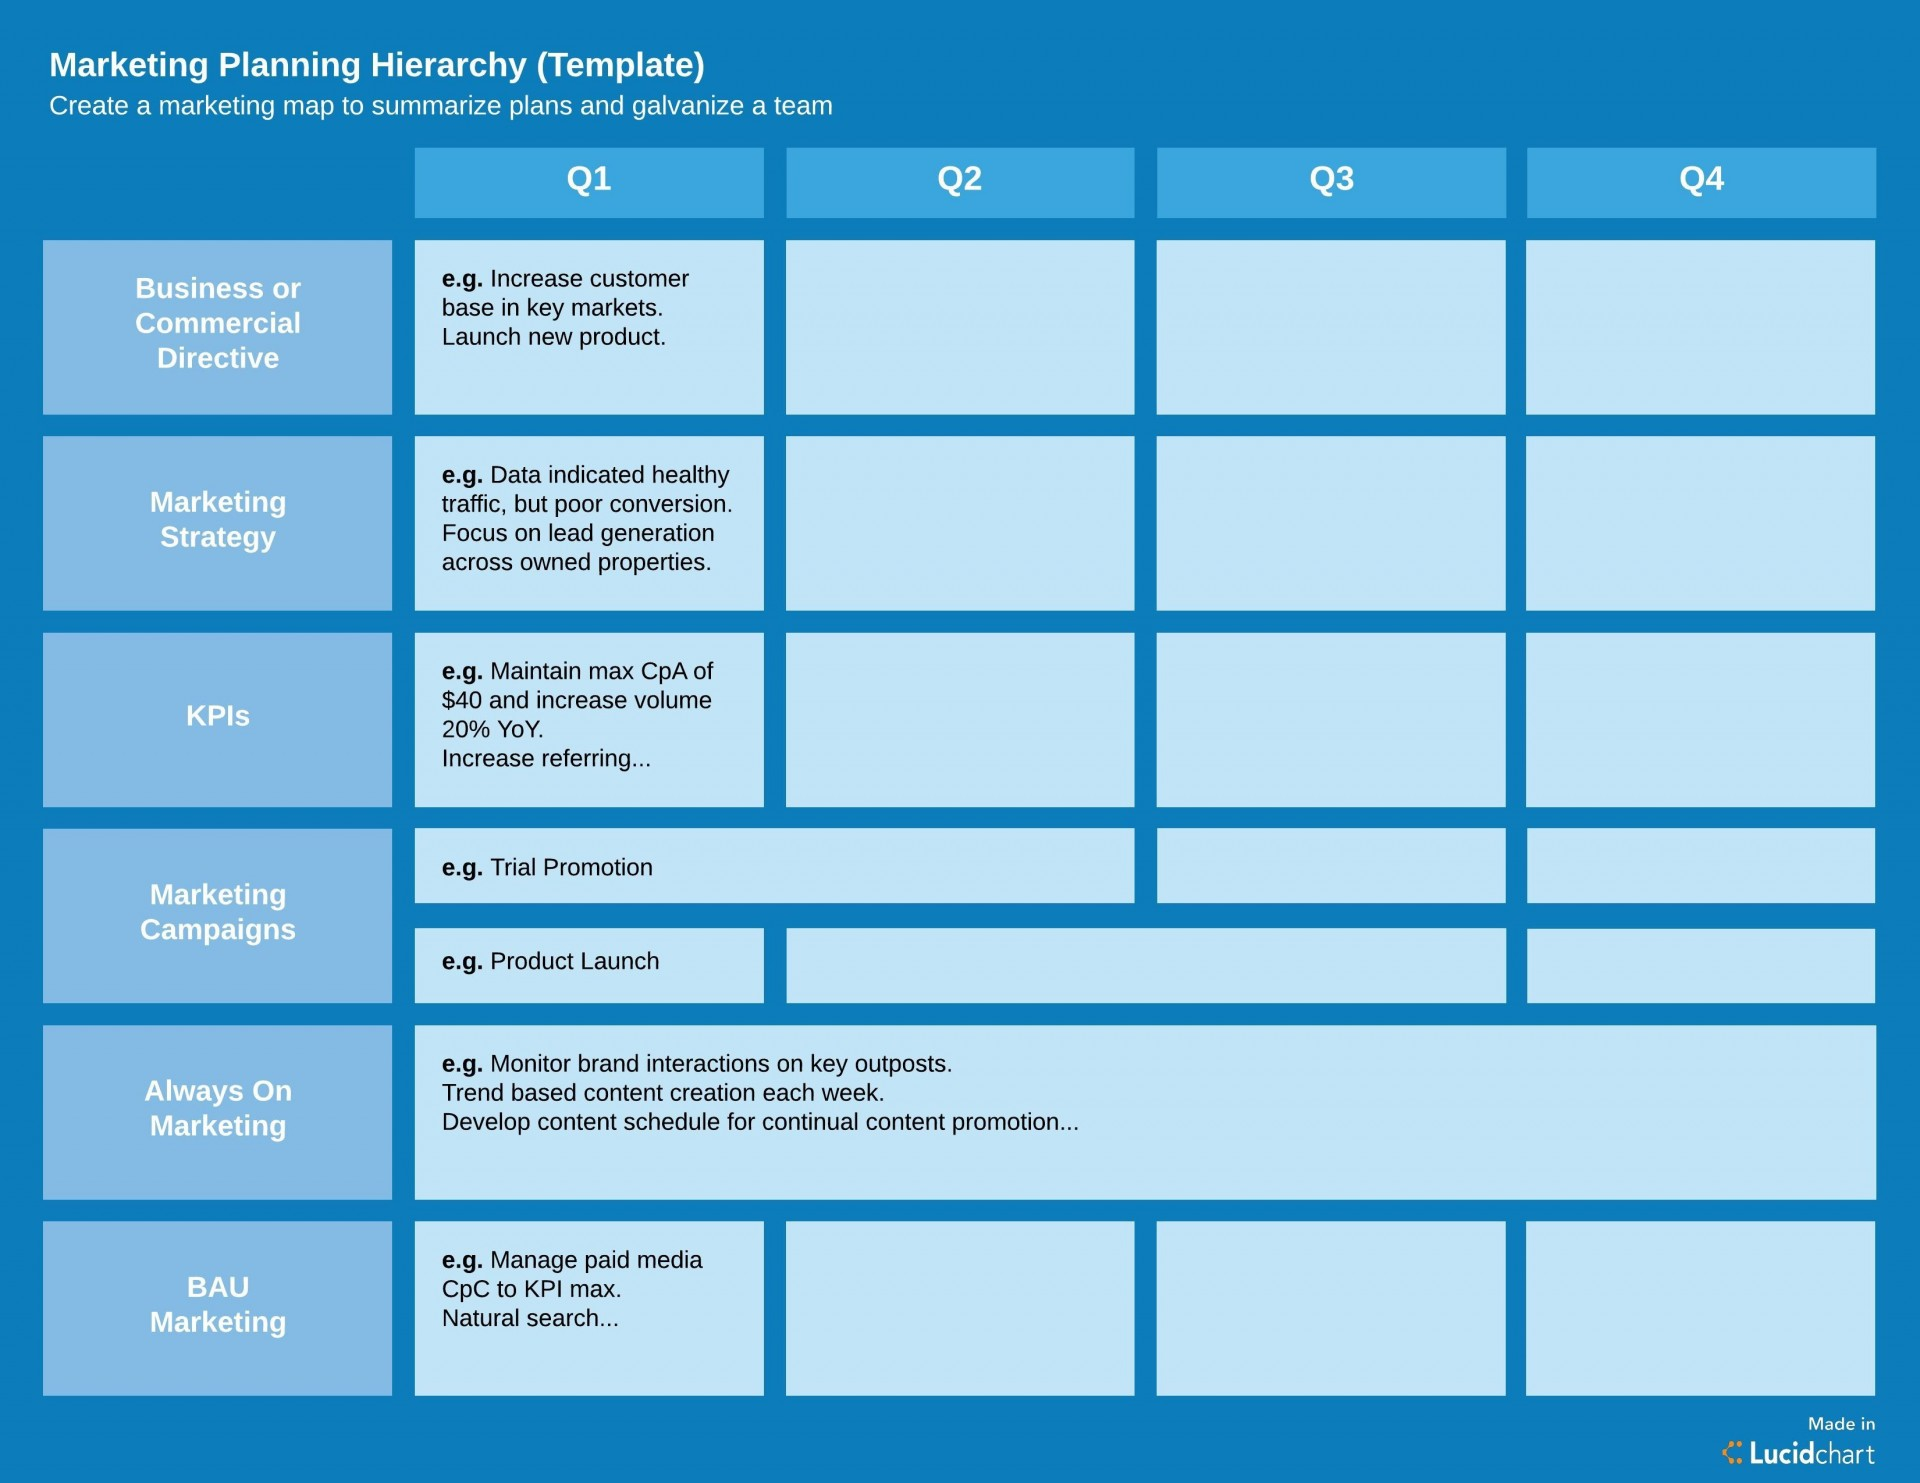 003 Archaicawful Free Marketing Plan Template Photo  Music Download Digital Pdf Excel1920